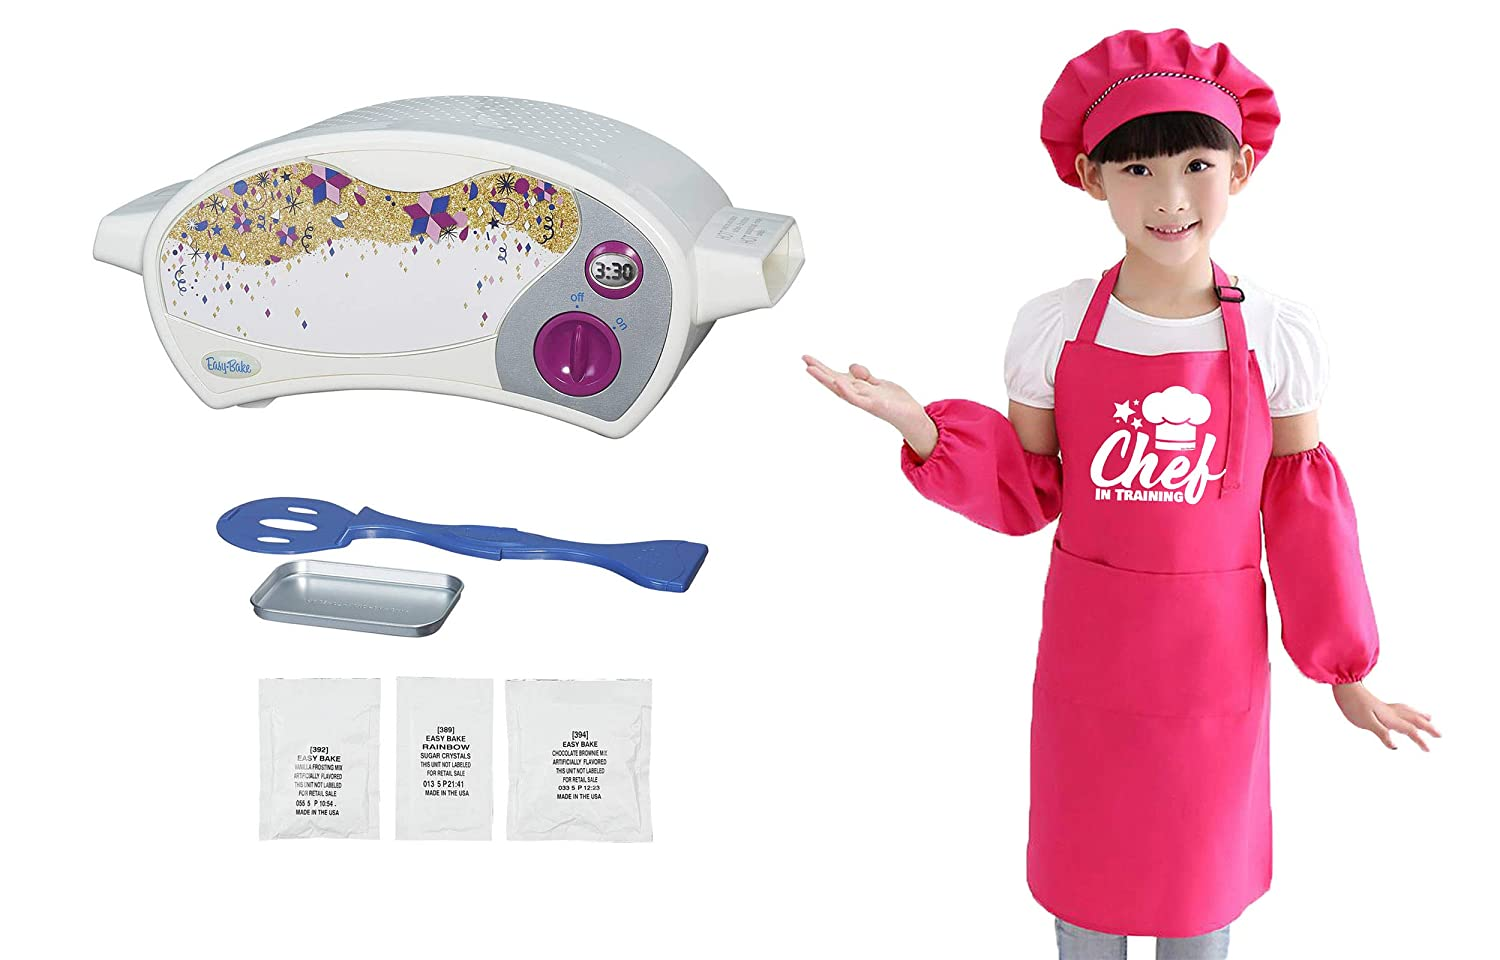 Sister Novelties Easy Bake Ultimate Oven Bundled with Childrens Chef in Training Apron Set, Apron with Matching Chef Hat and Sleeves for Boys and Girls (Pink Aprons Set + Easy Bake Oven)